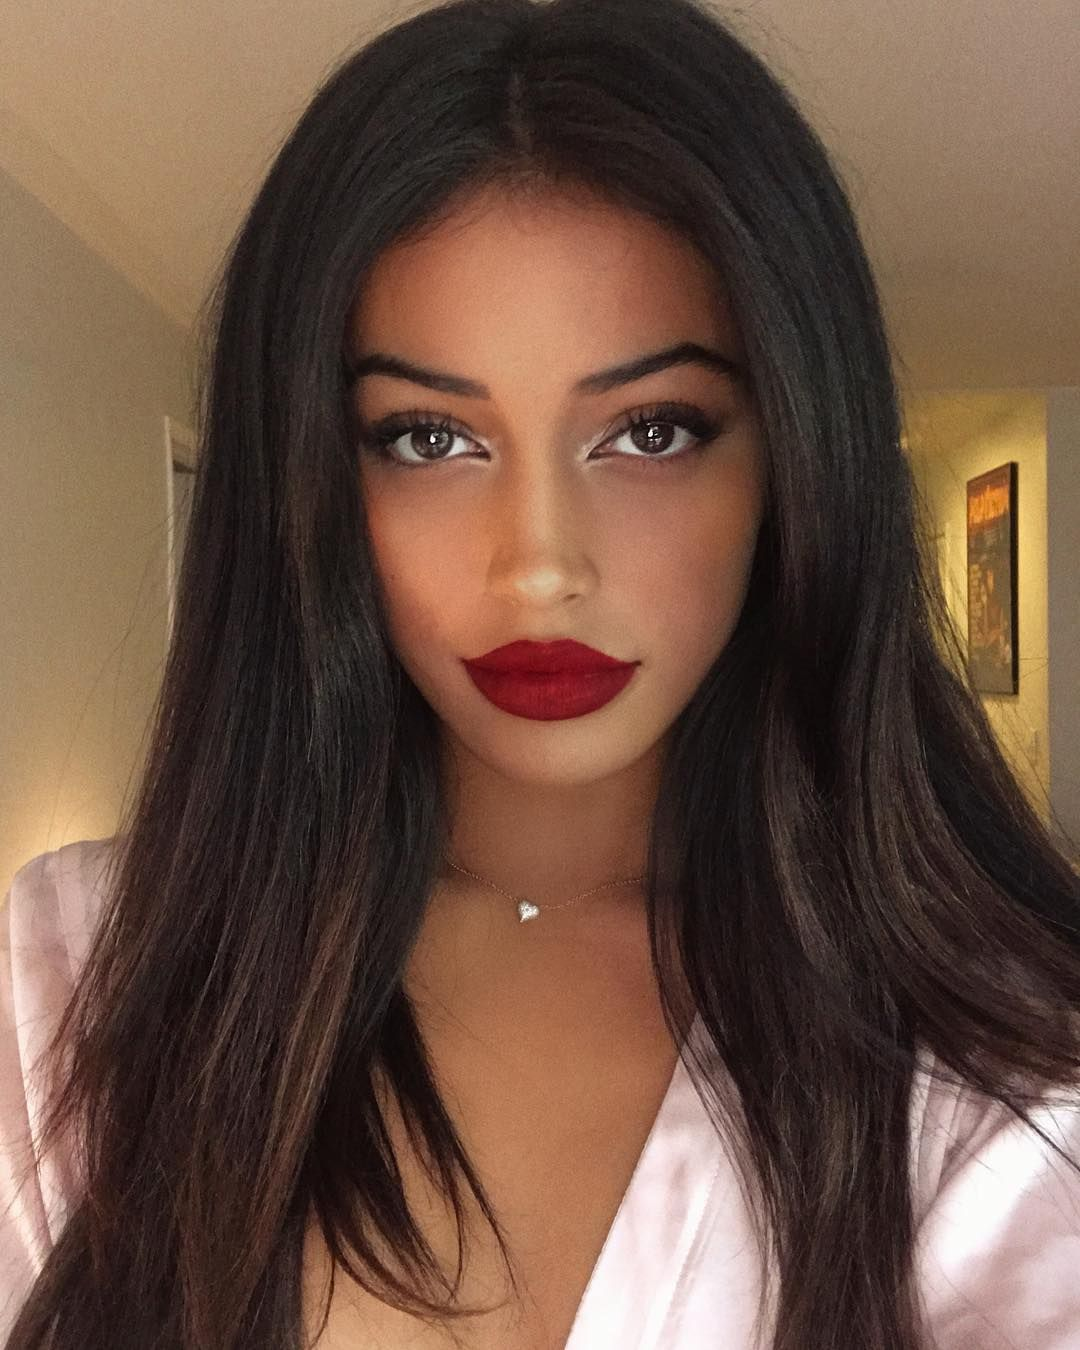 232 4k Likes 1 917 Comments Cindy Kimberly Wolfiecindy On